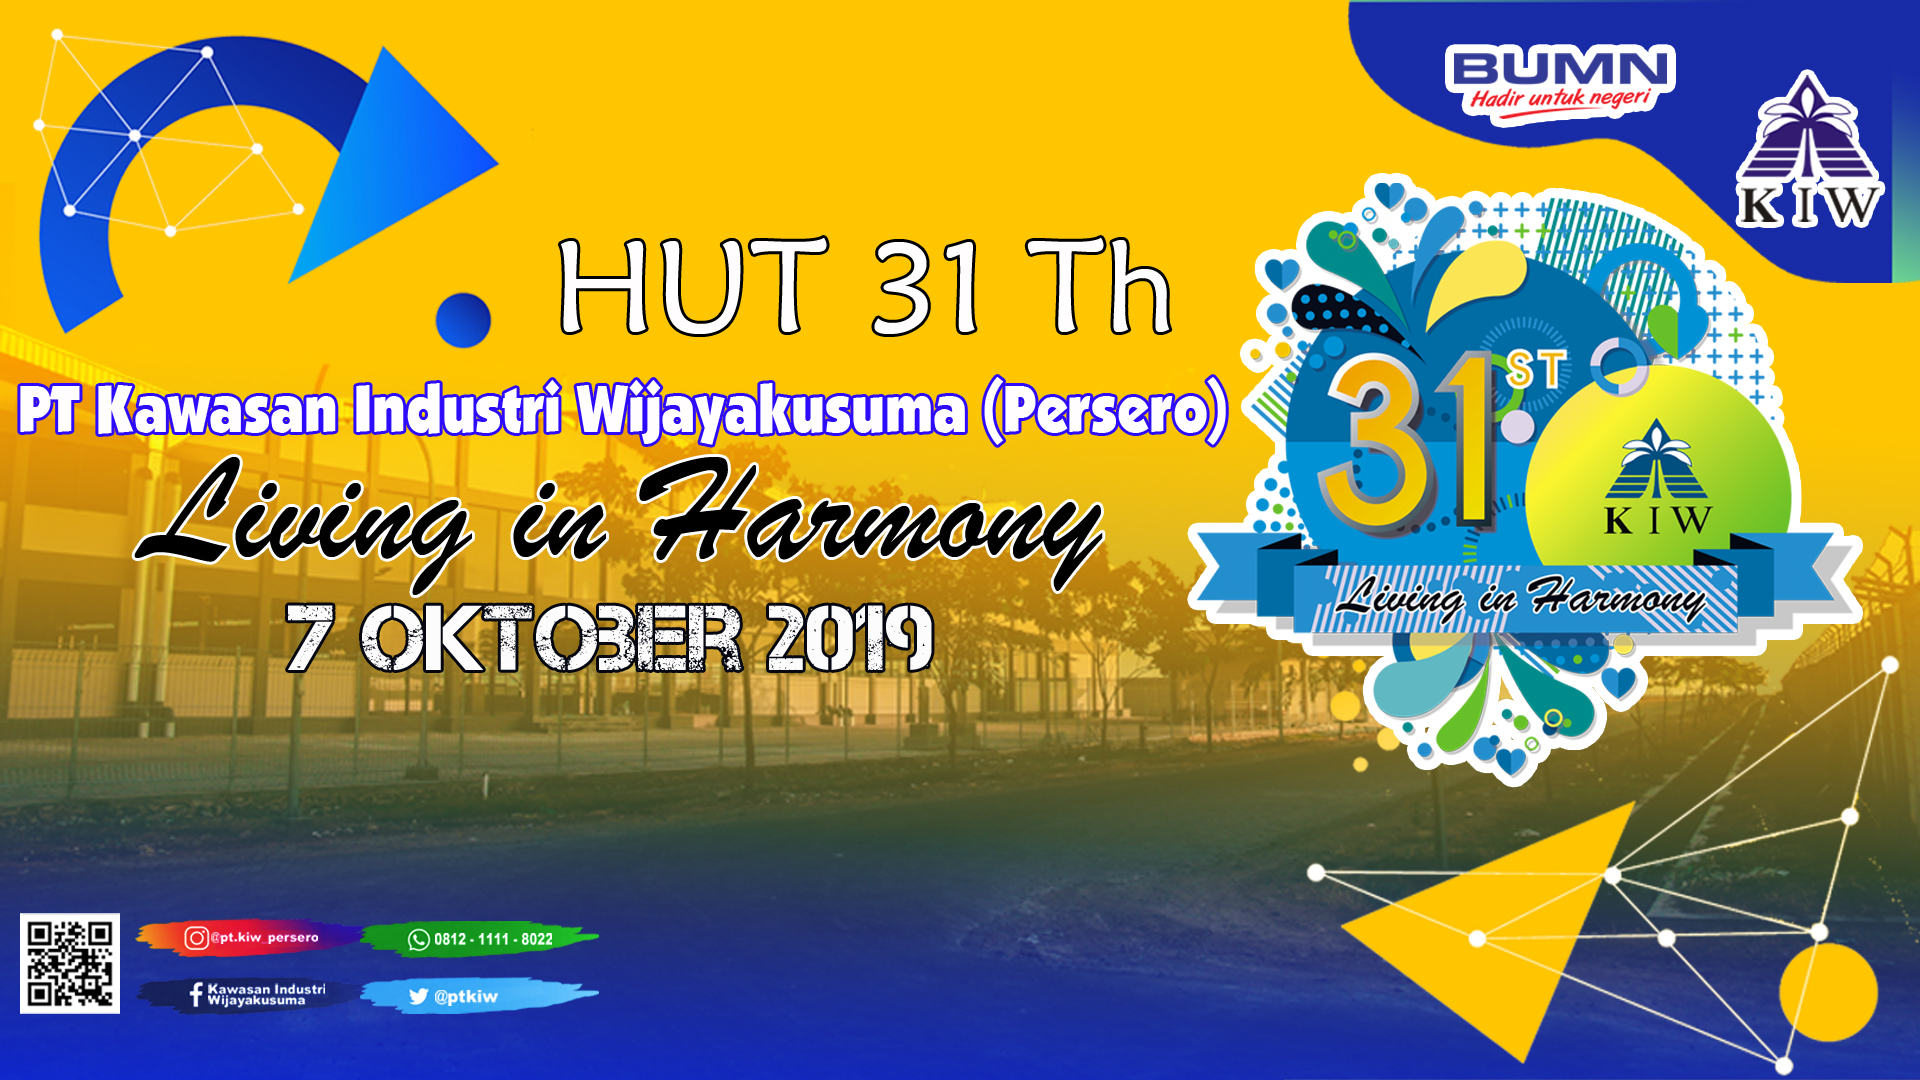 HUT KIW 31 TH